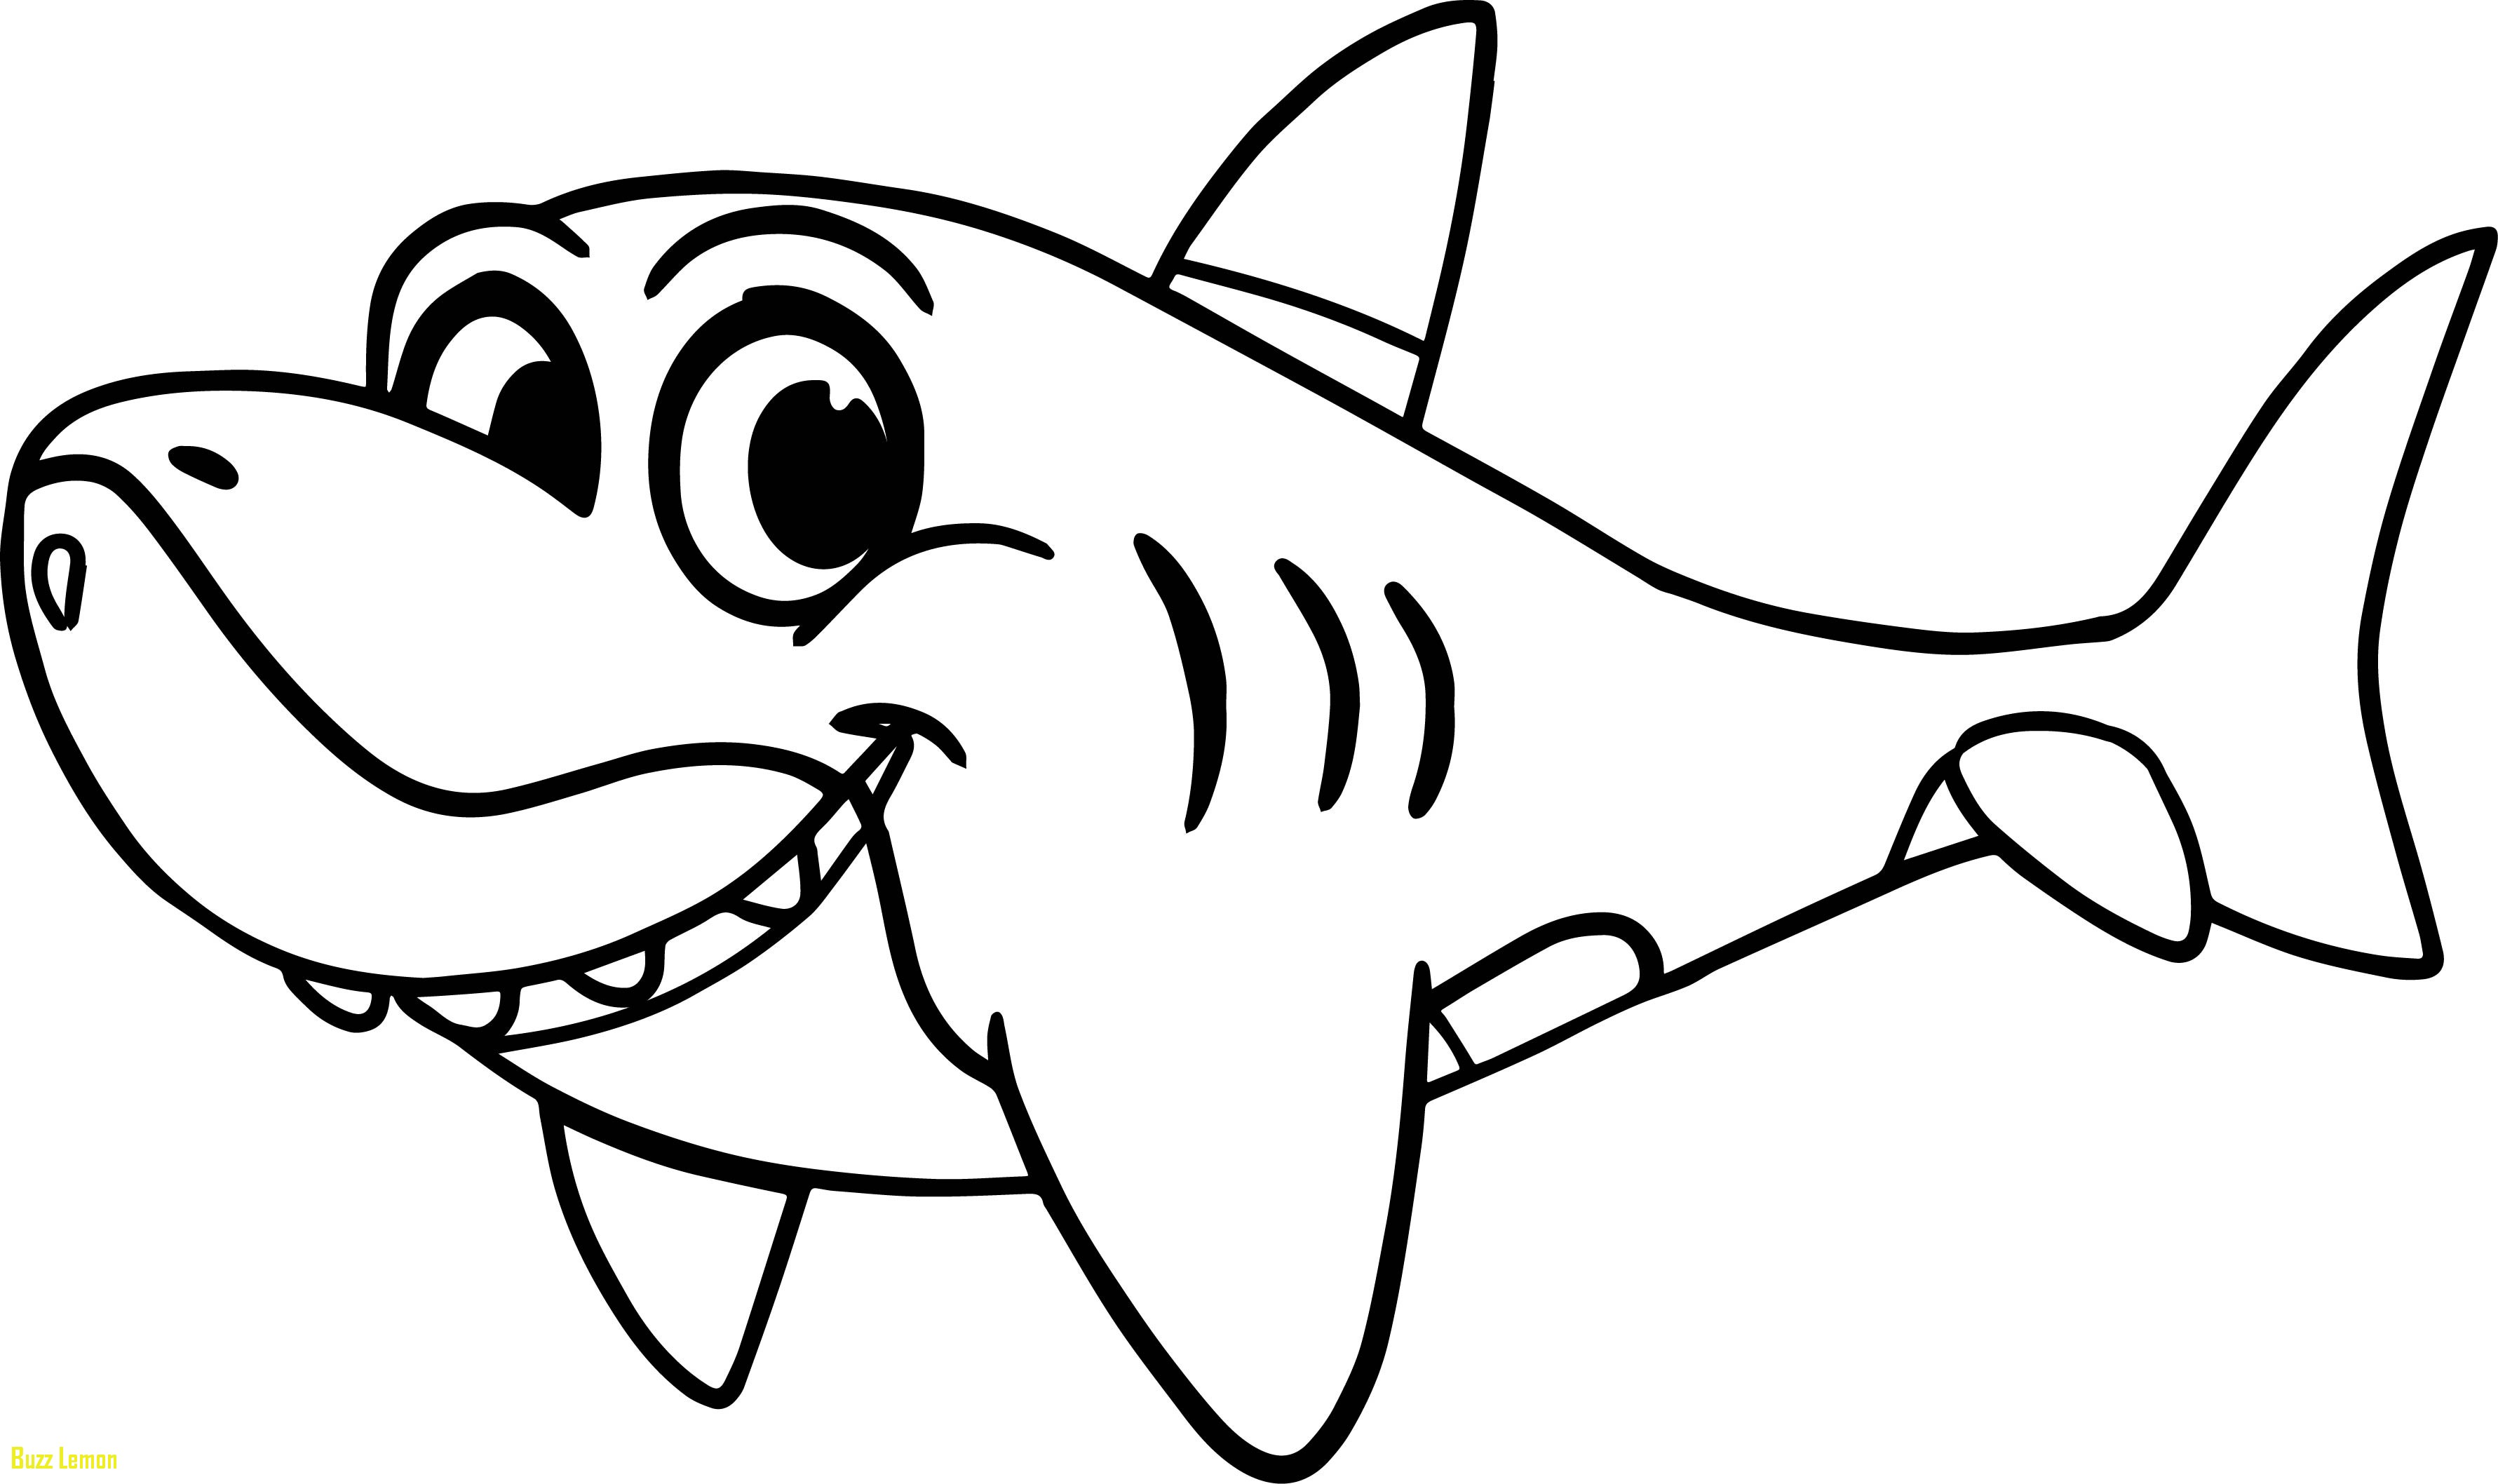 Lemon Shark Coloring Page